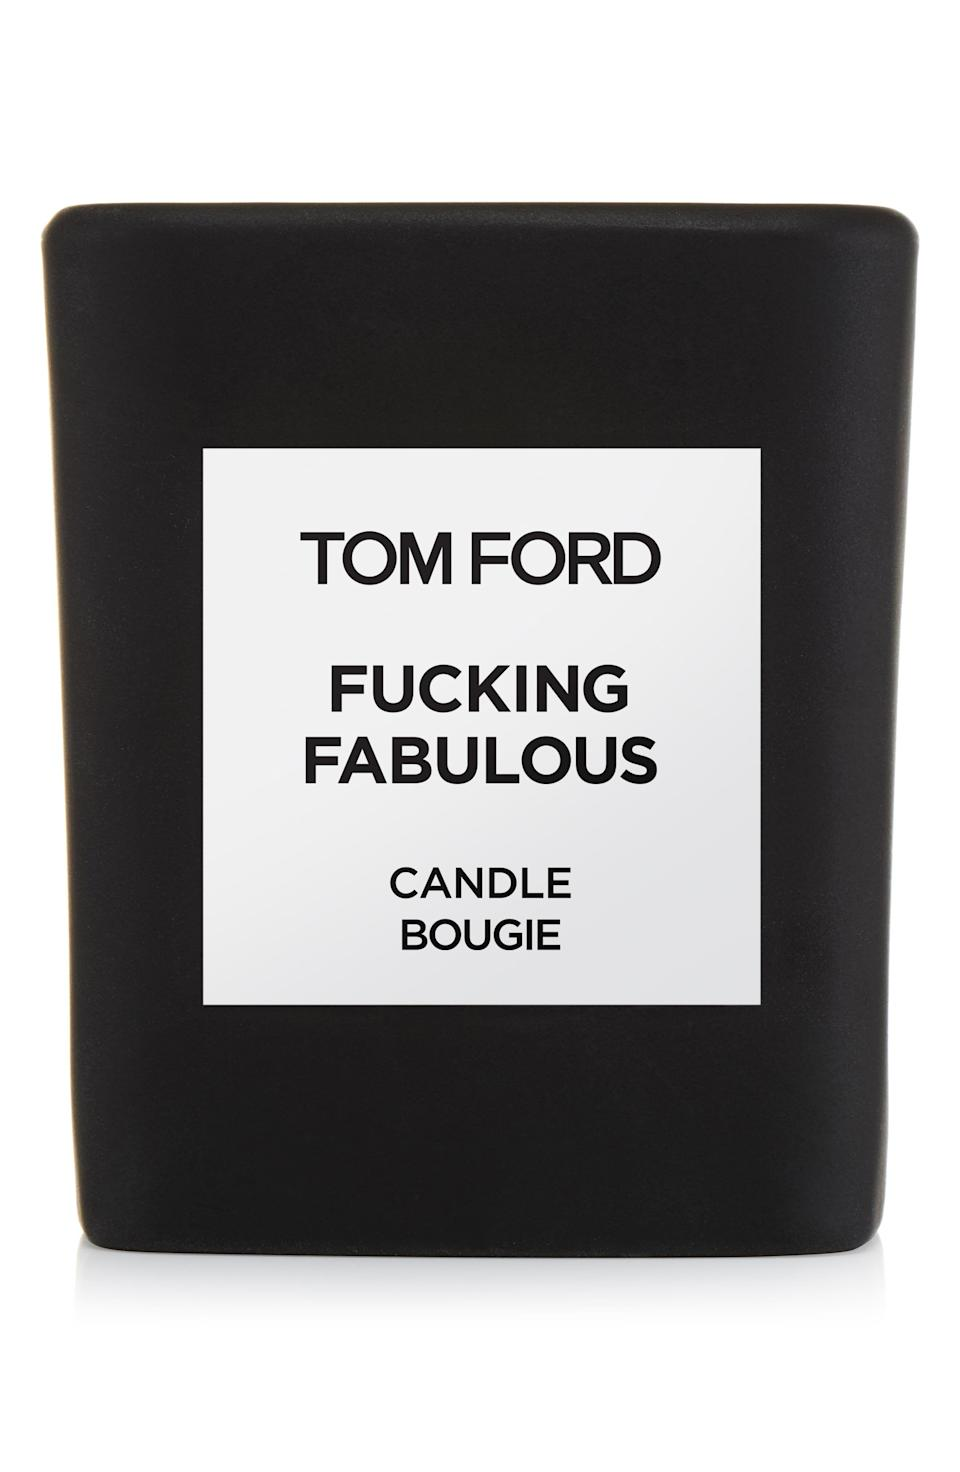 "<p><strong>TOM FORD</strong></p><p>nordstrom.com</p><p><strong>$132.00</strong></p><p><a href=""https://go.redirectingat.com?id=74968X1596630&url=https%3A%2F%2Fshop.nordstrom.com%2Fs%2Ftom-ford-fabulous-candle%2F5084903&sref=https%3A%2F%2Fwww.cosmopolitan.com%2Flifestyle%2Fg28518643%2Fluxury-candles%2F"" rel=""nofollow noopener"" target=""_blank"" data-ylk=""slk:Shop Now"" class=""link rapid-noclick-resp"">Shop Now</a></p><p>I mean, the name of this one really says it all. But if you need to know what F*cking Fabulous really smells like, it has notes of leather, sage, vanilla, and tonka bean for a rich (in every sense of the word) fragrance. Yes, it's pricey, but it burns up to 40 hours, and sometimes you just feel like splurging after payday.</p>"